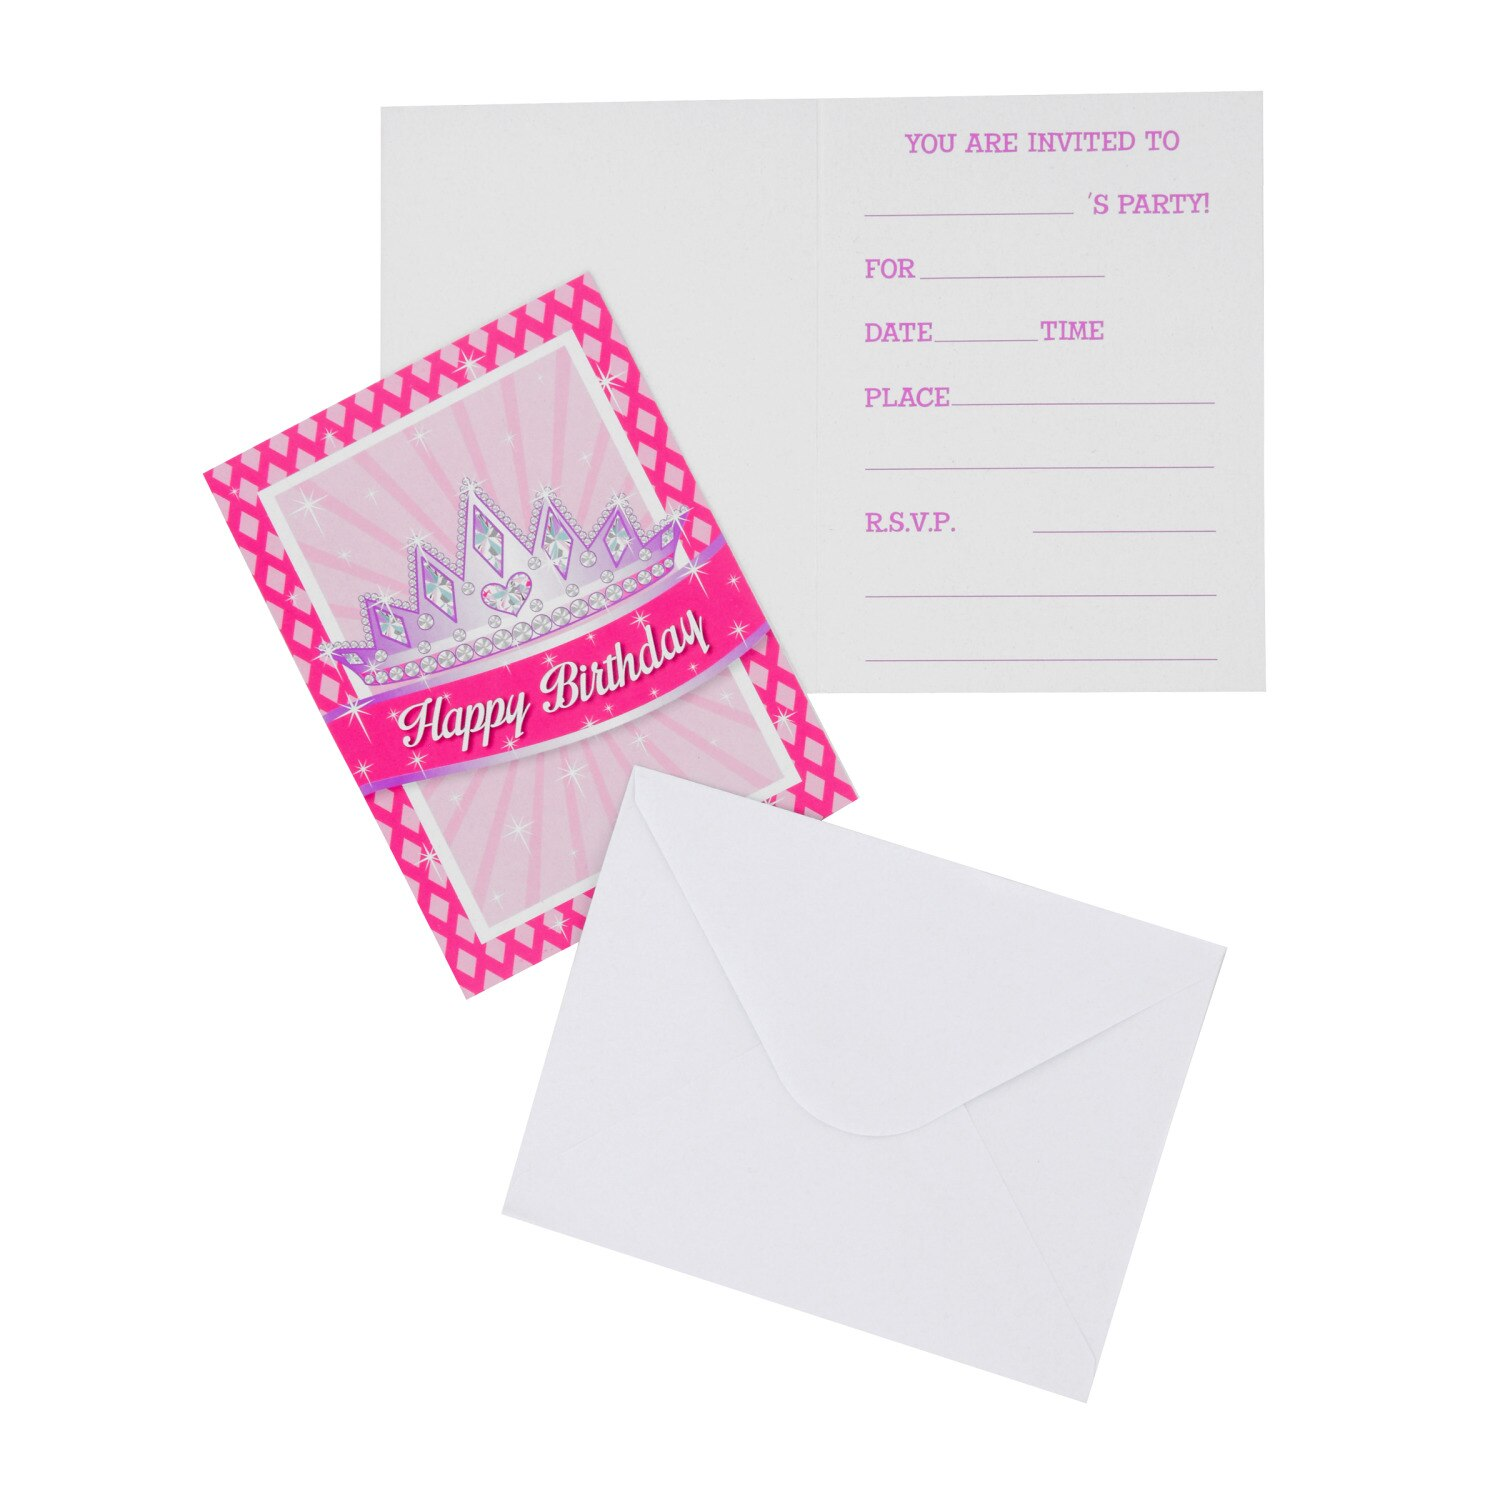 Dollartree Com Bulk Princess Party Invitations With Envelopes 8